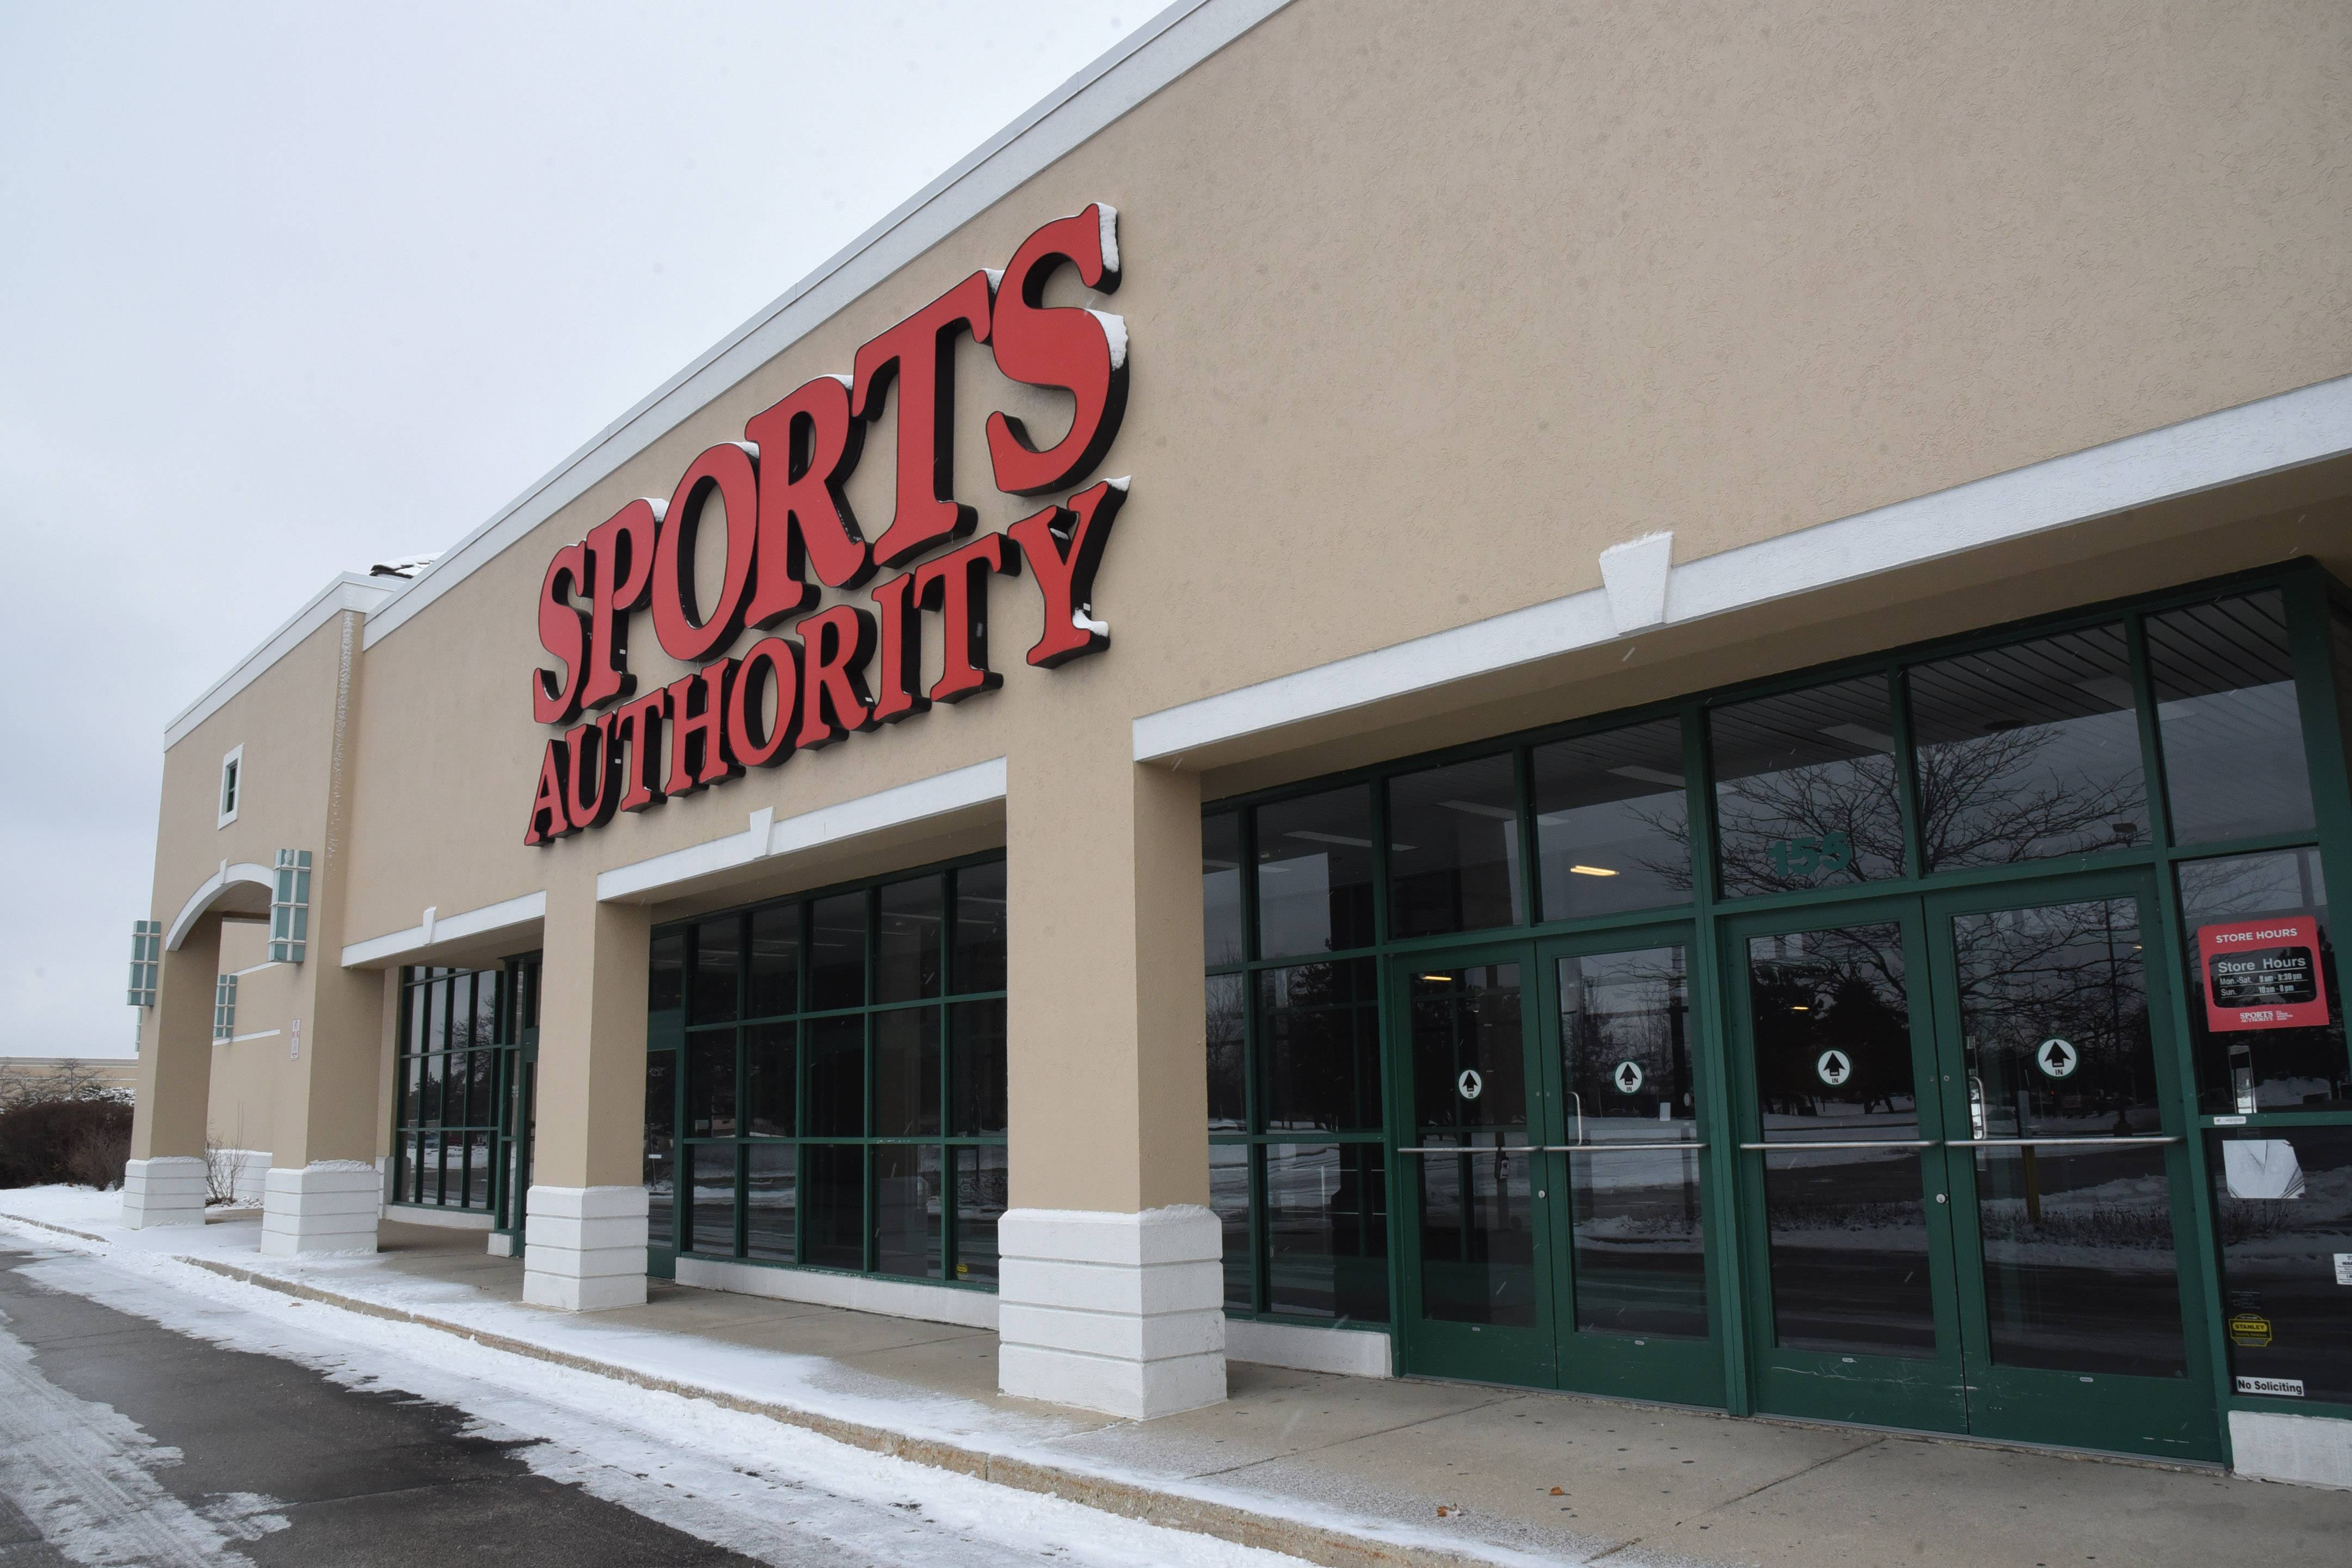 A joint venture of the company owned by 24 Hour Fitness founder Mark Mastrov and an entity owned by the Chicago Bears is pursuing Bears Fit, a full-service fitness club in the vacant former Sports Authority store along busy Route 60 in Vernon Hills.